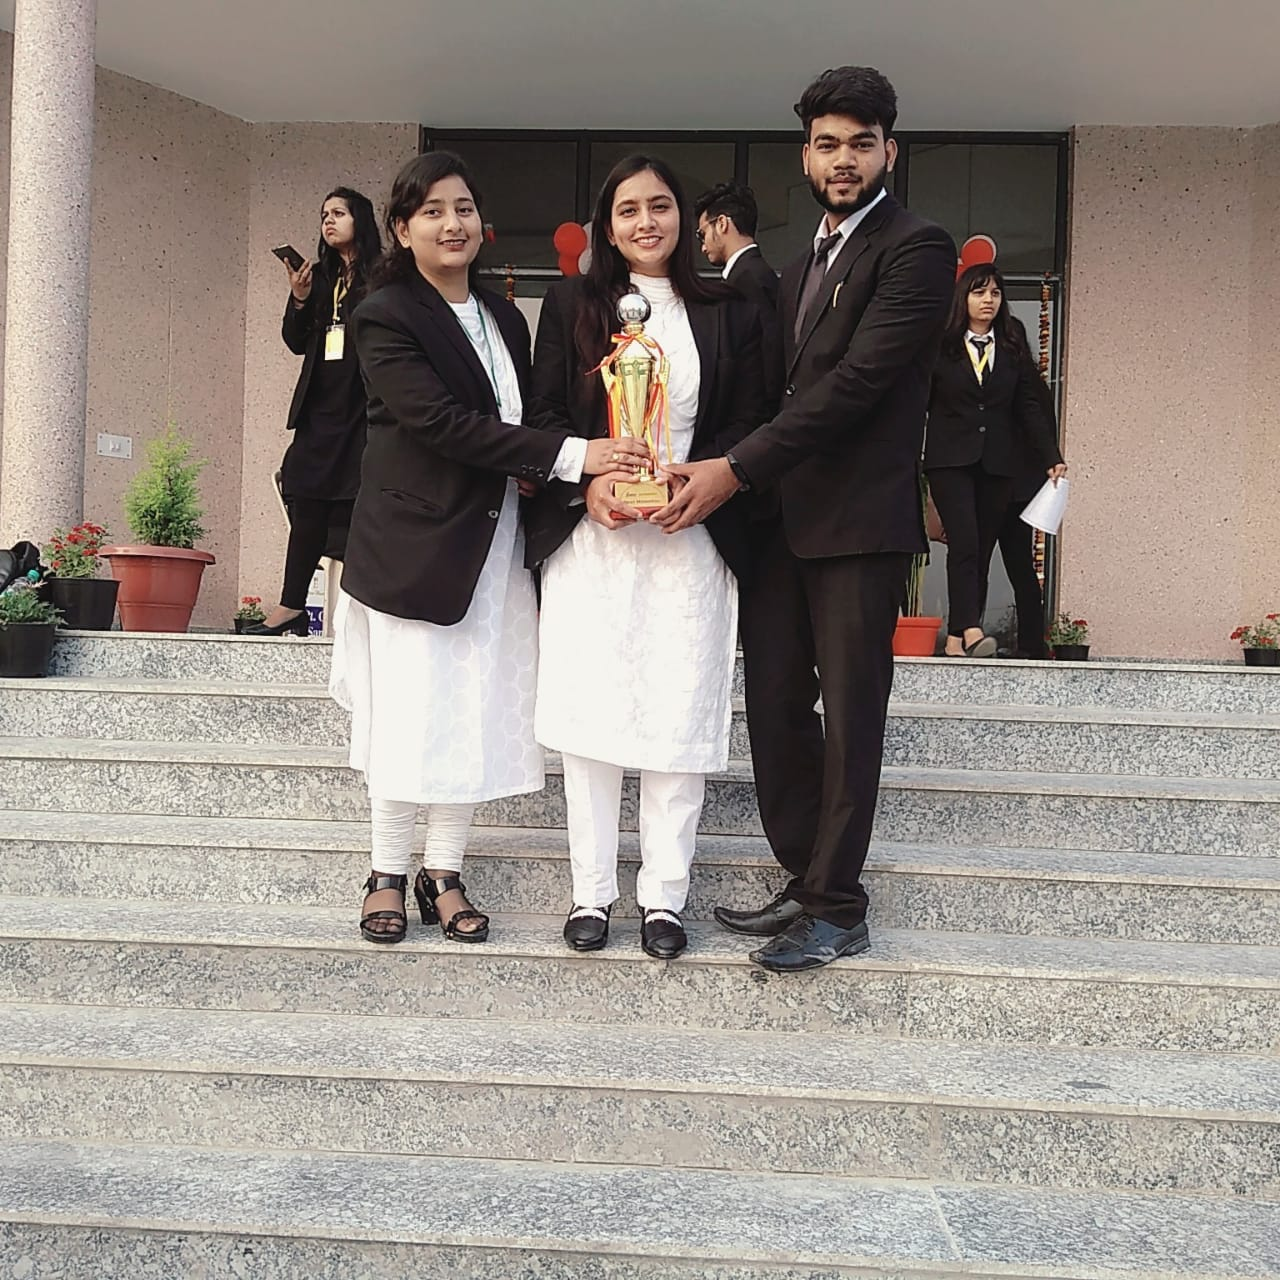 Best Memorial of JMNMCC, 2019 - Aligarh Muslim University